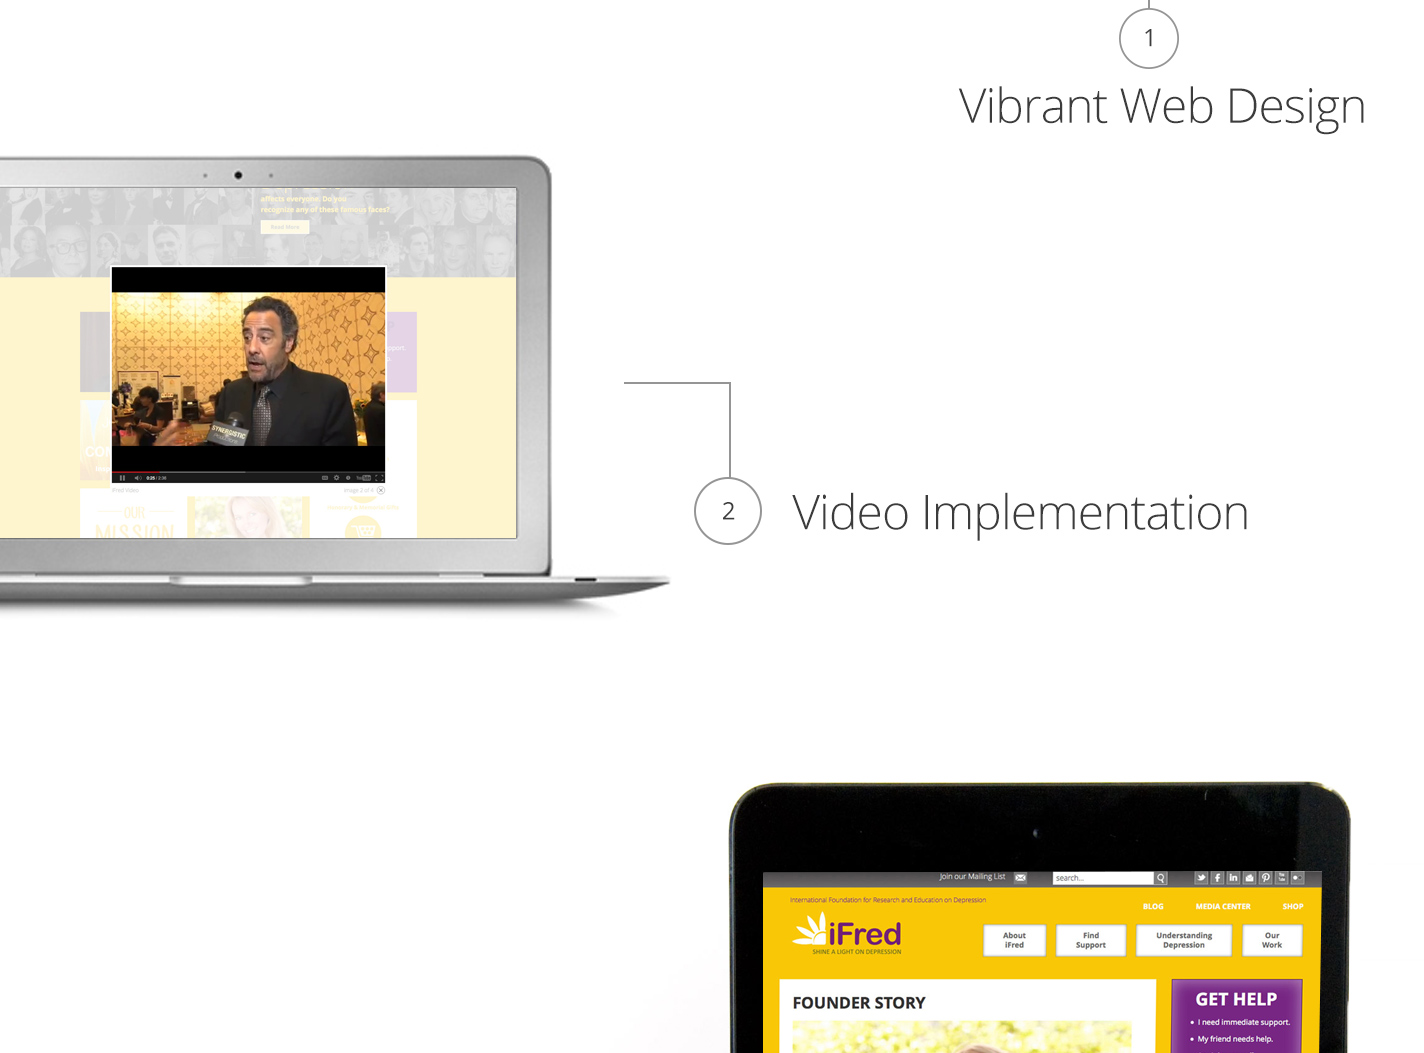 Video Implementation